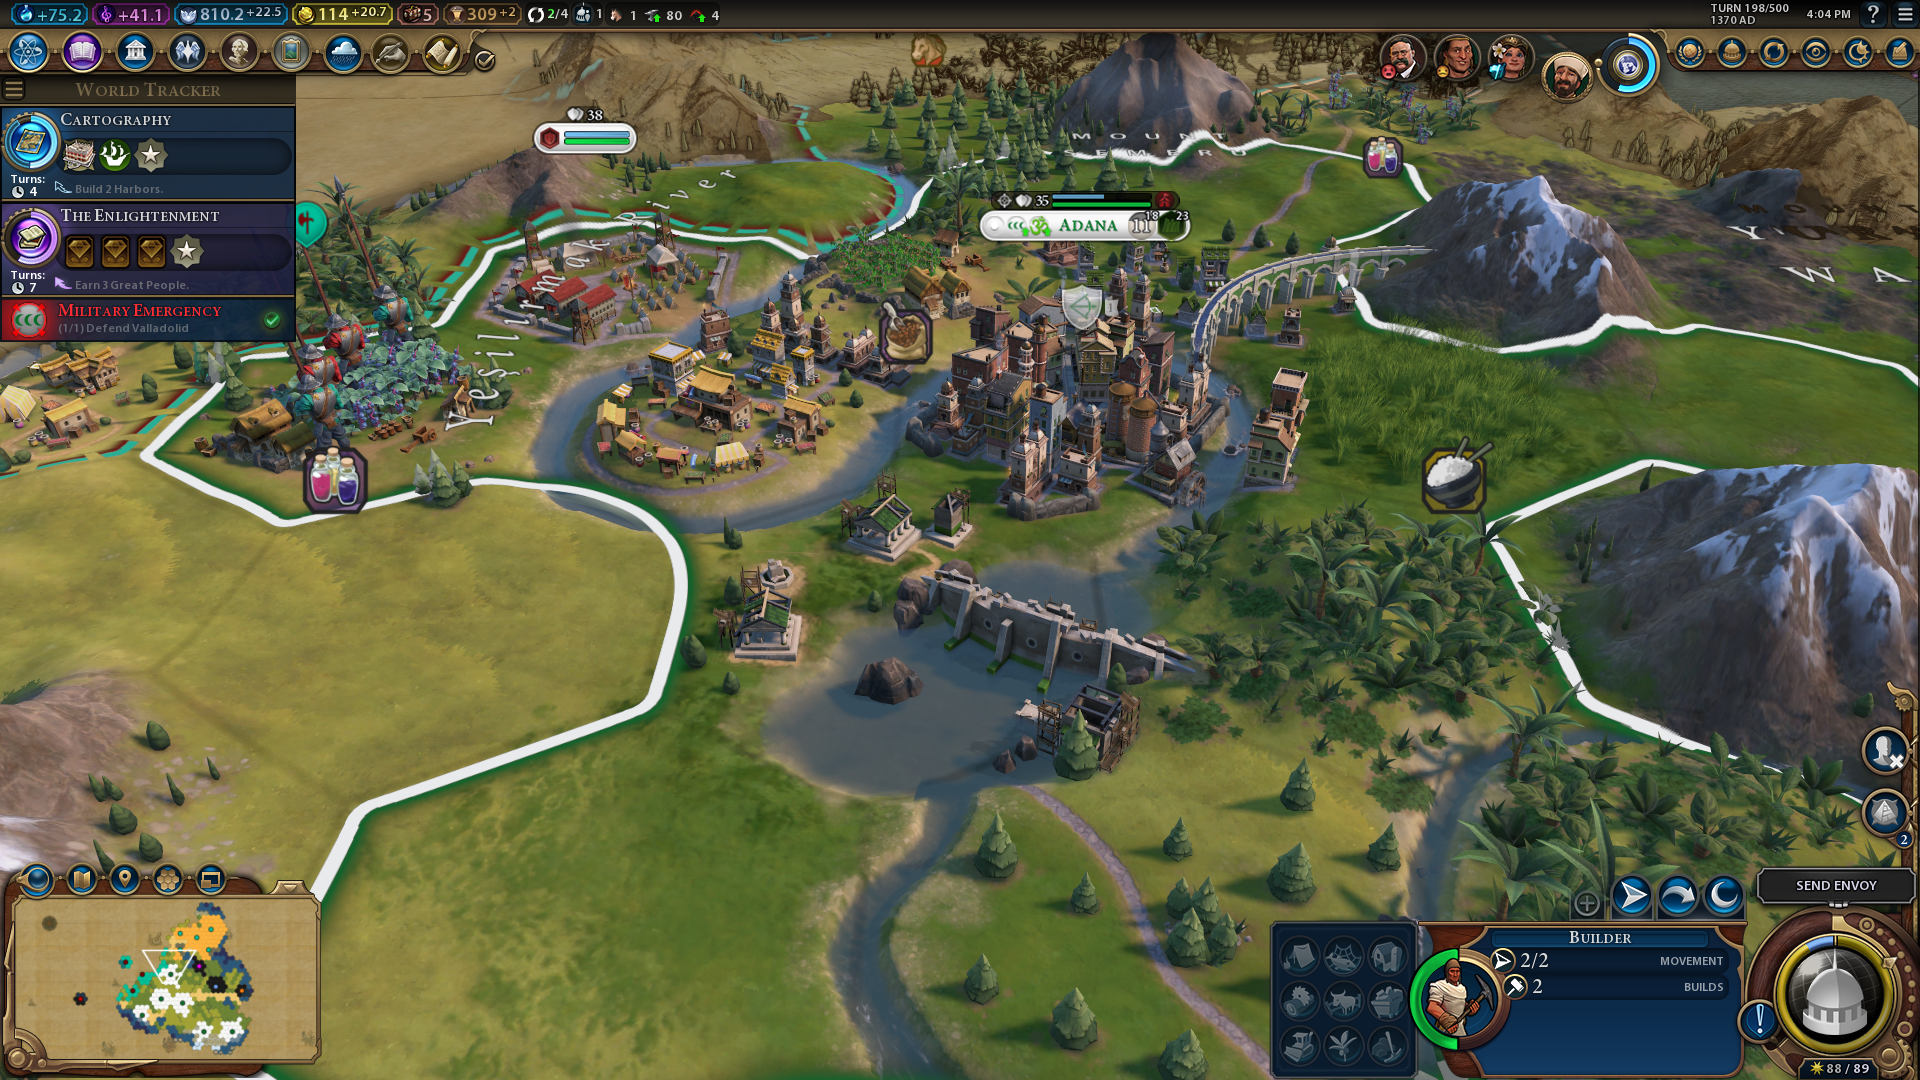 Sid Meier's Civilization VI: Gathering Storm - PC - Nerd Bacon